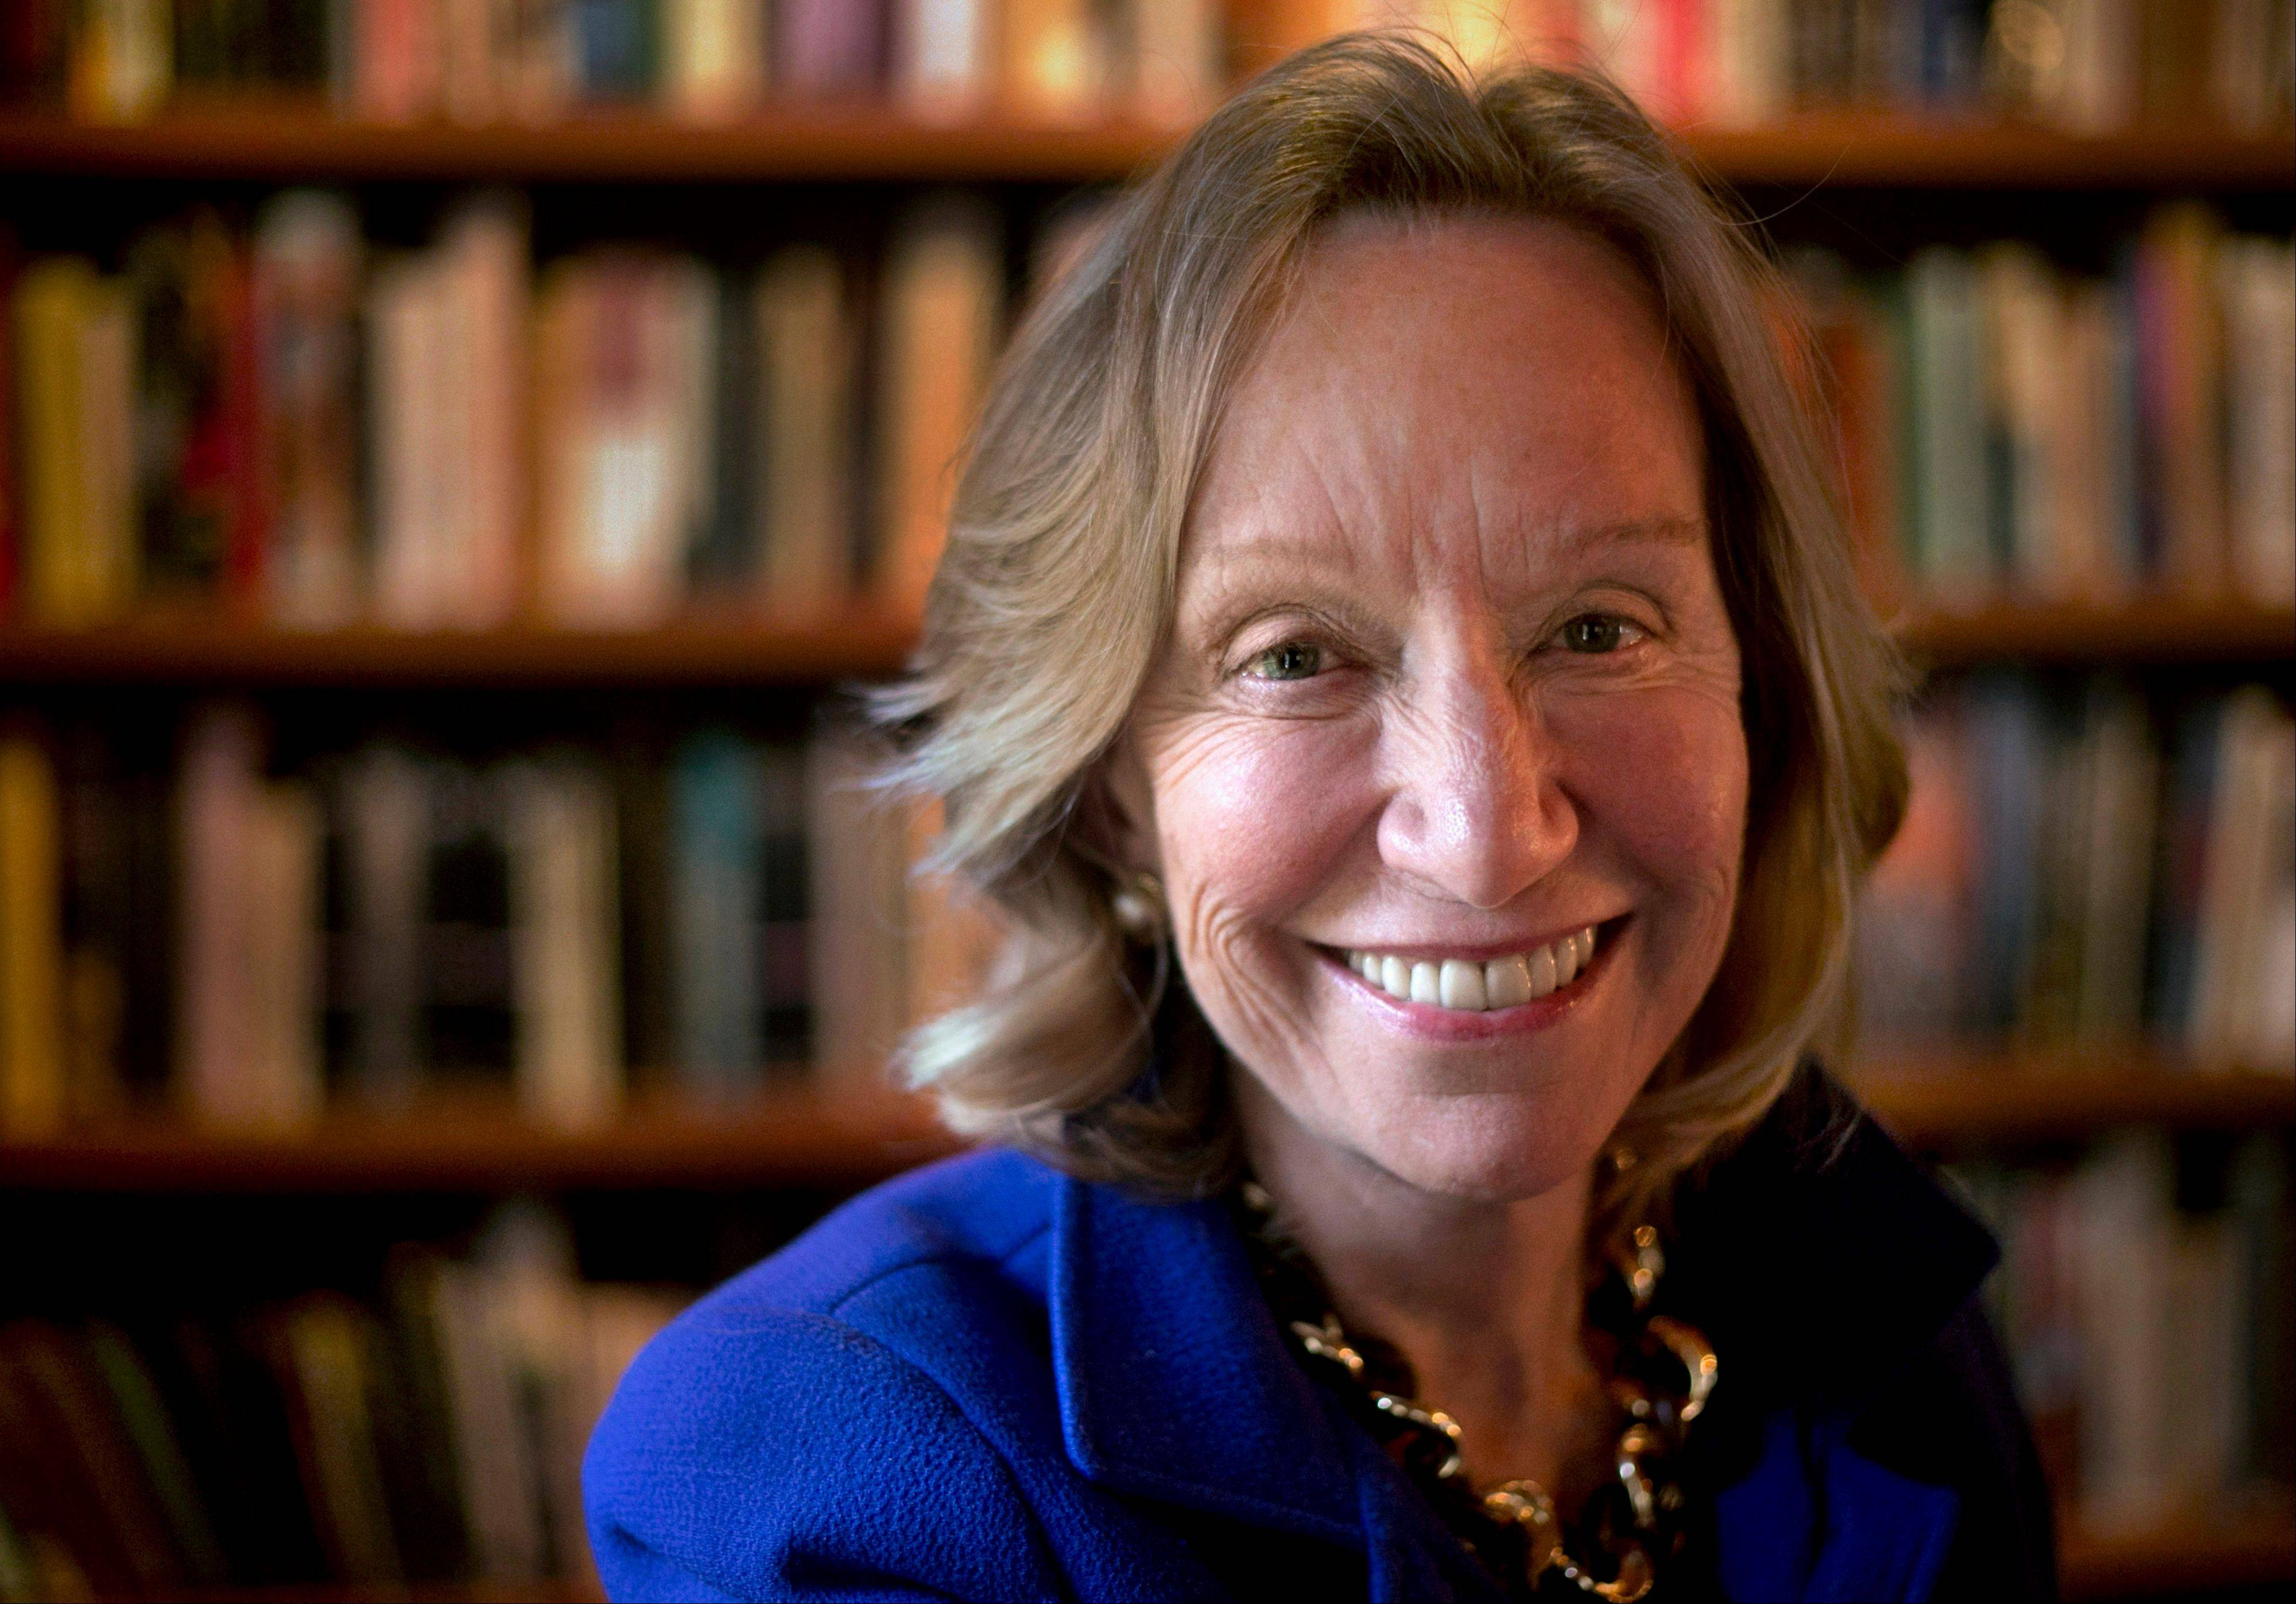 Author Doris Kearns Goodwin�s latest book, �The Bully Pulpit: Theodore Roosevelt, William Howard Taft, and the Golden Age of Journalism,� will be released on Tuesday, Nov. 5.